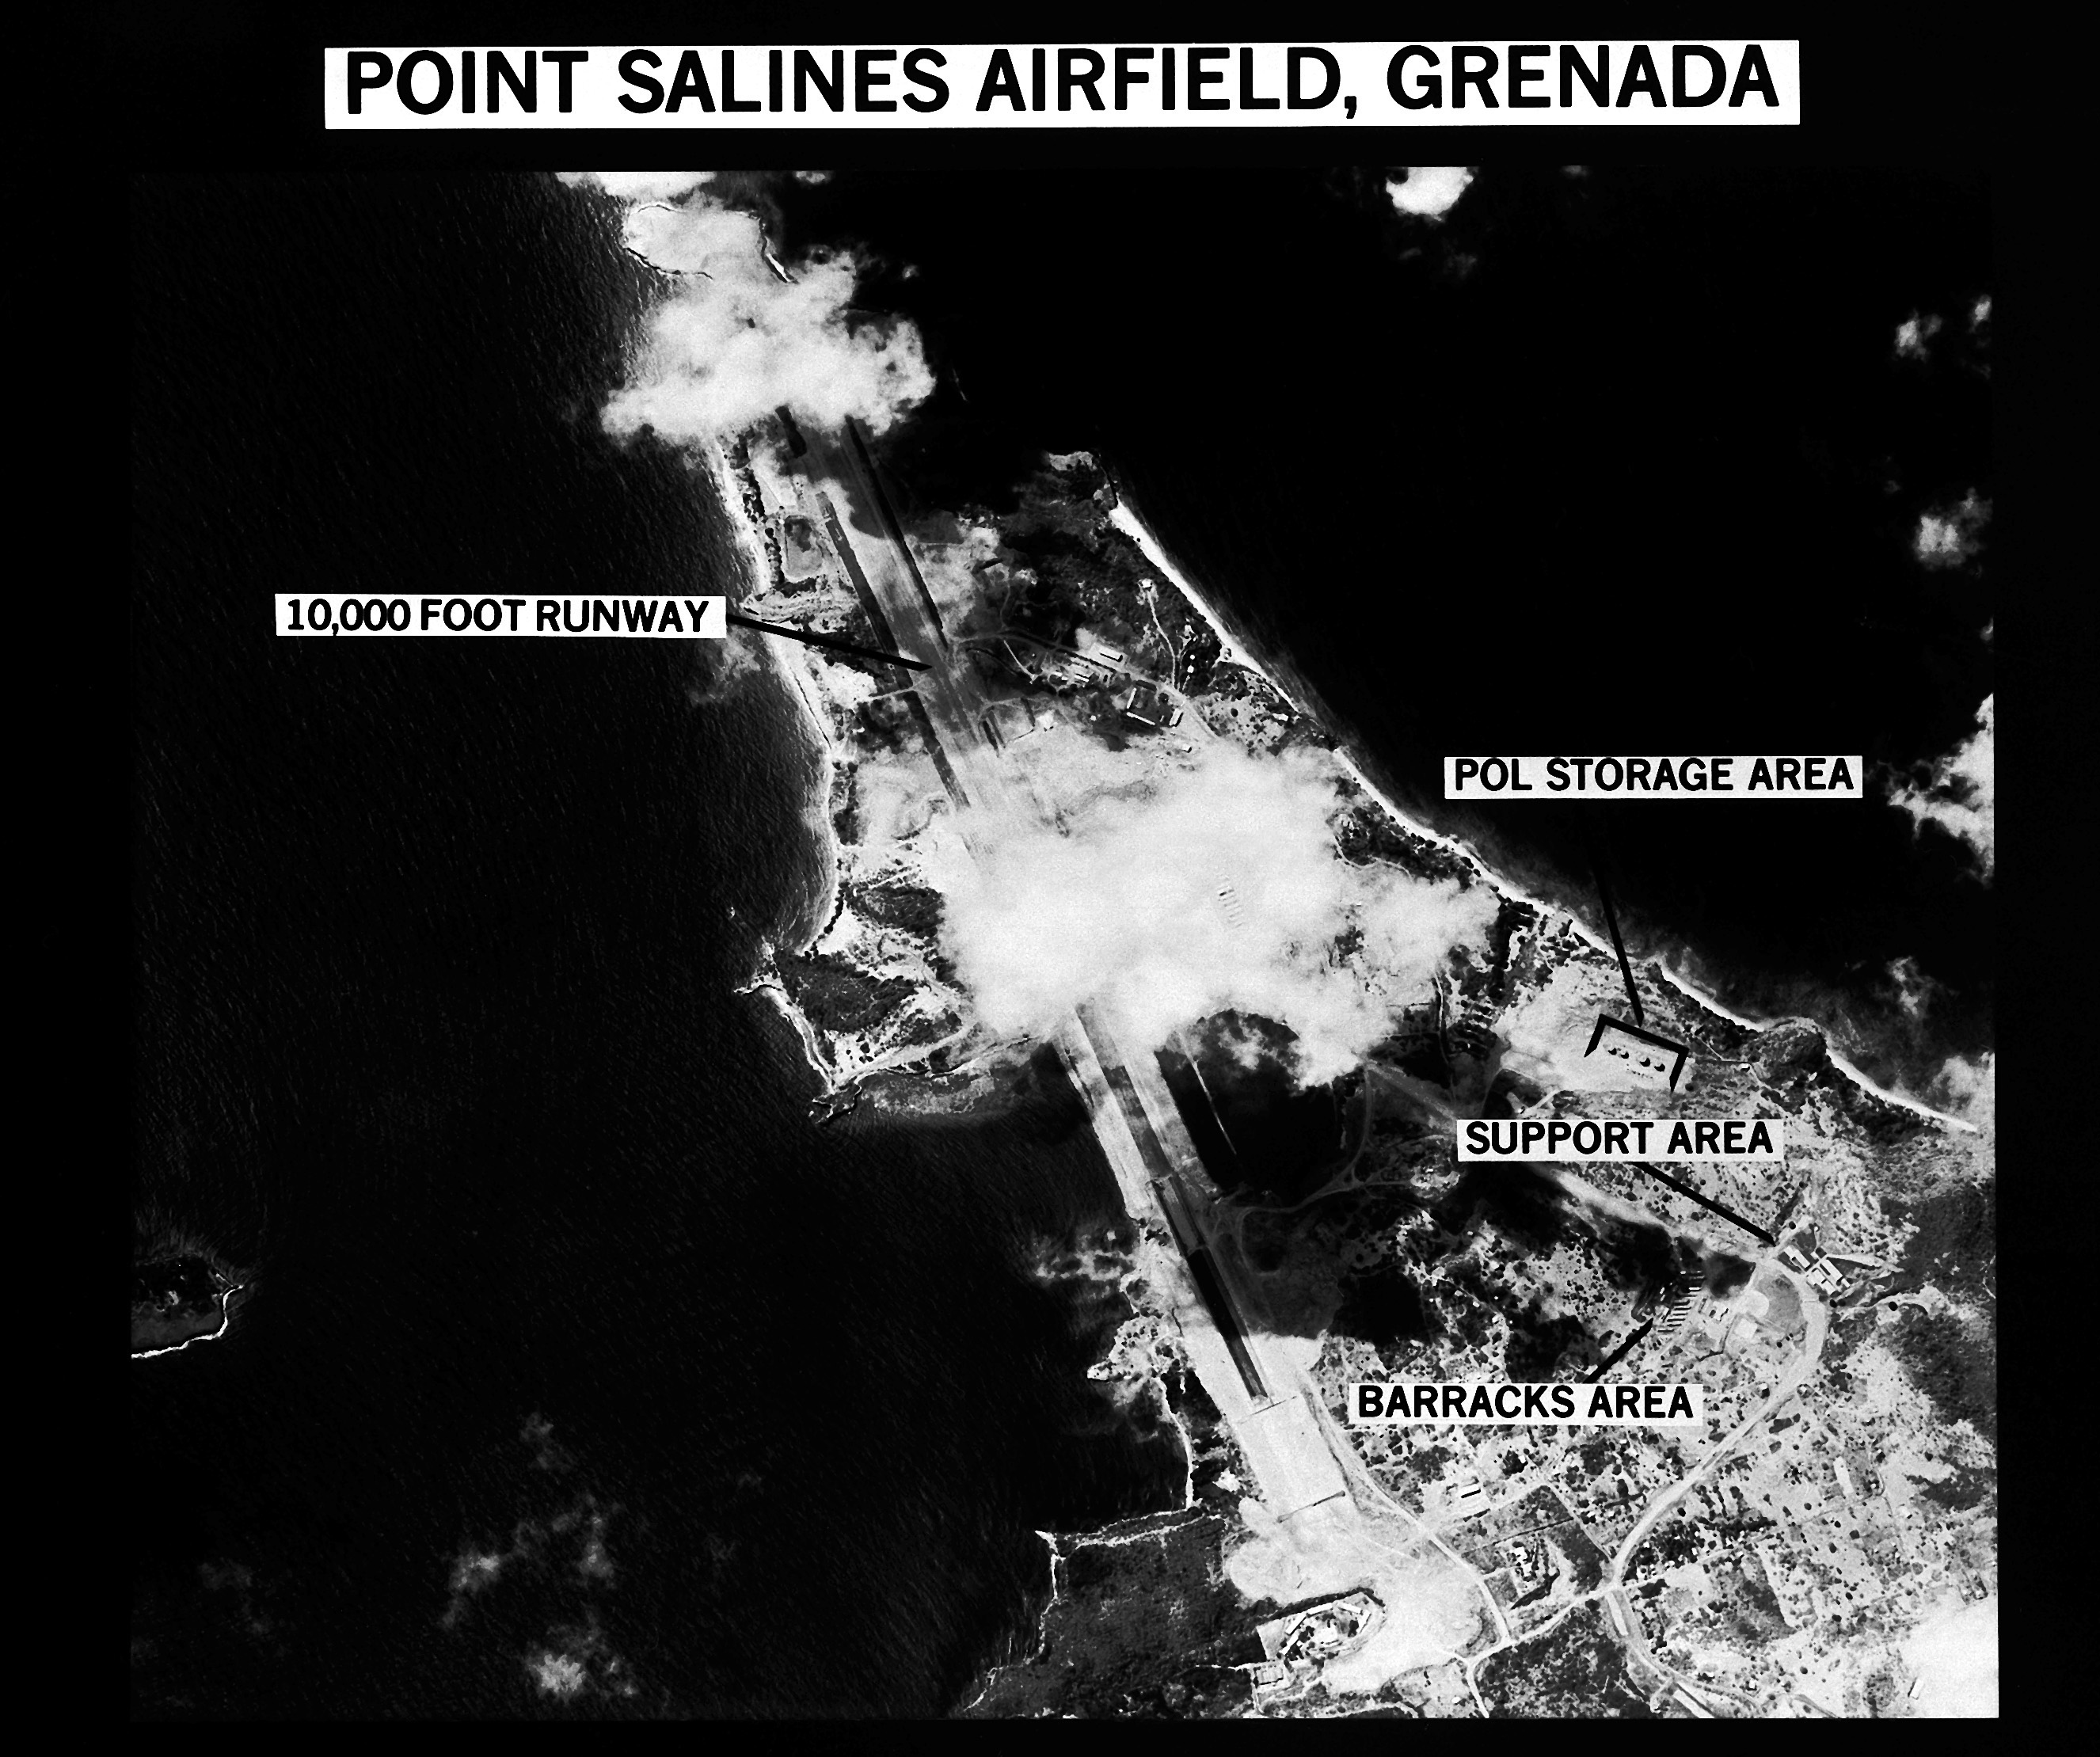 A map of Point Salines Airfield, Grenada, with areas of the base identified